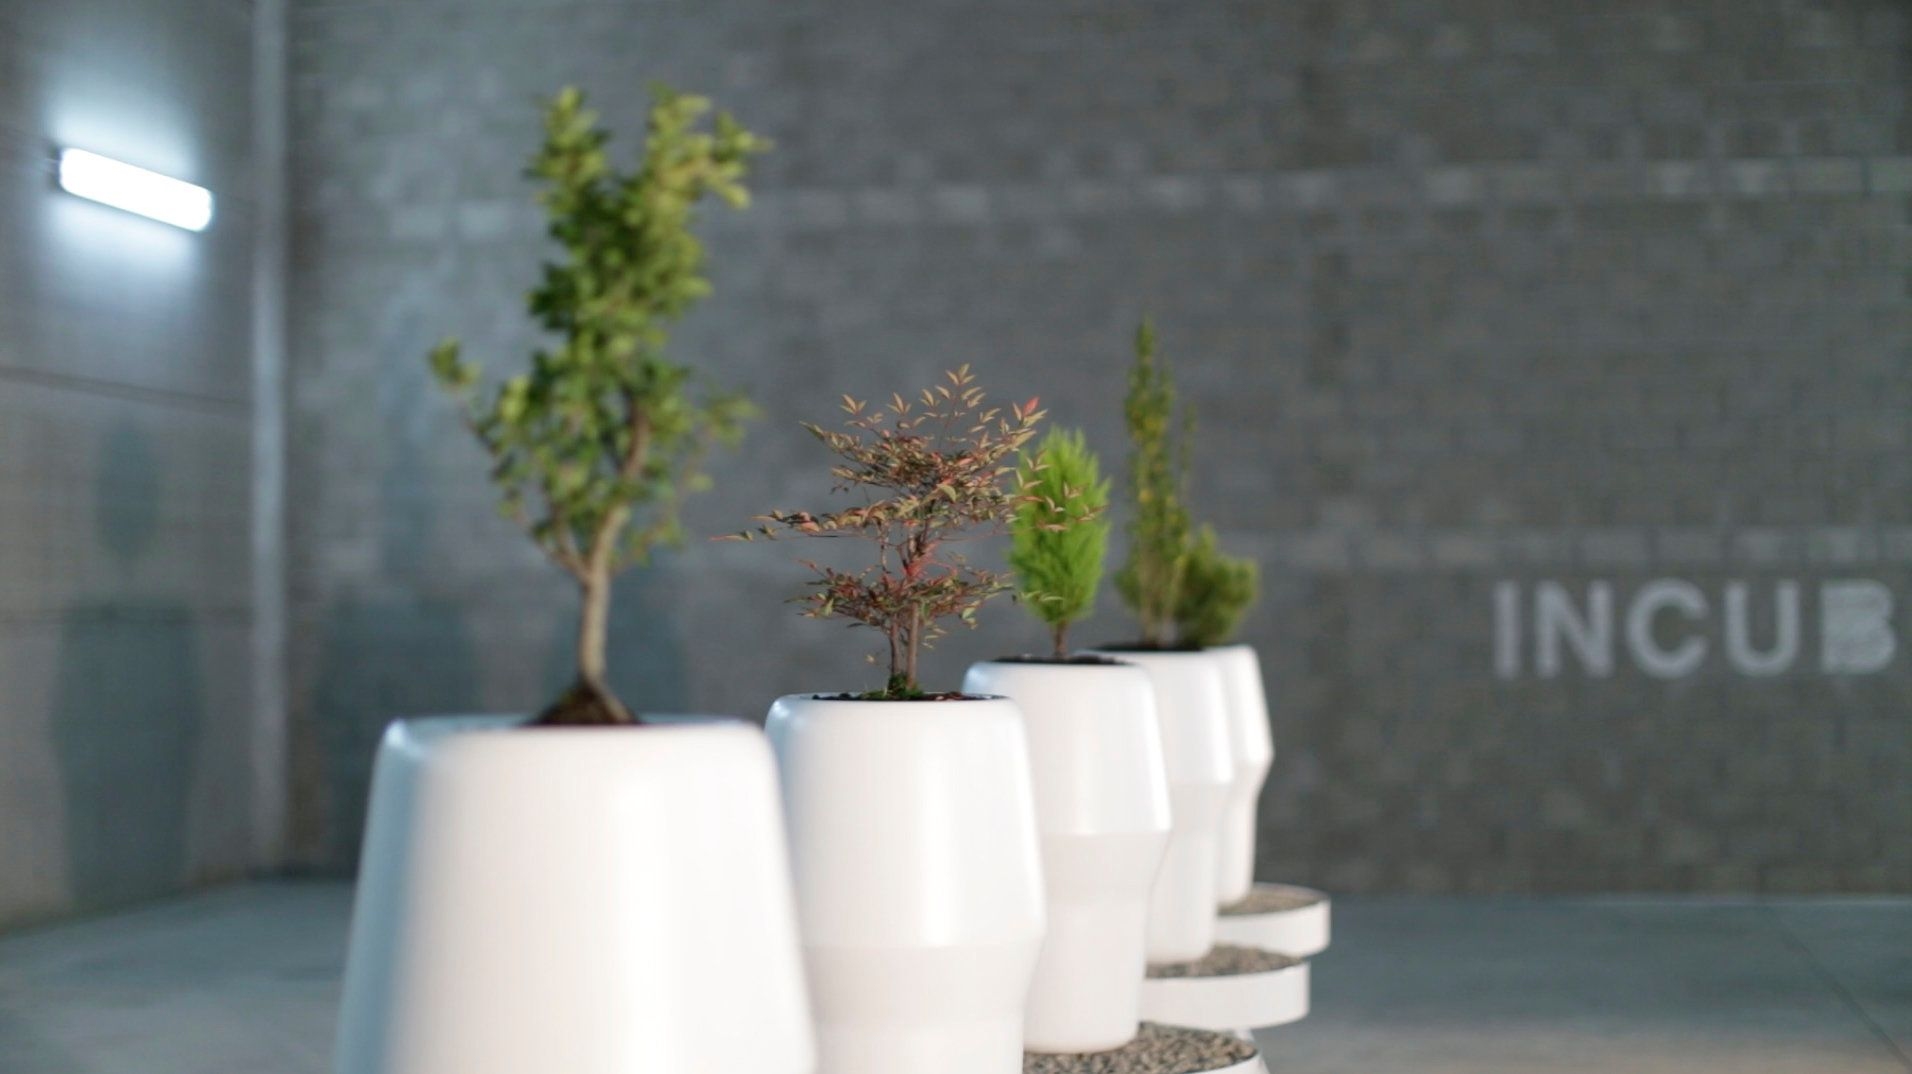 Bios Urn is a biodegradable urn that converts ashes into a tree.